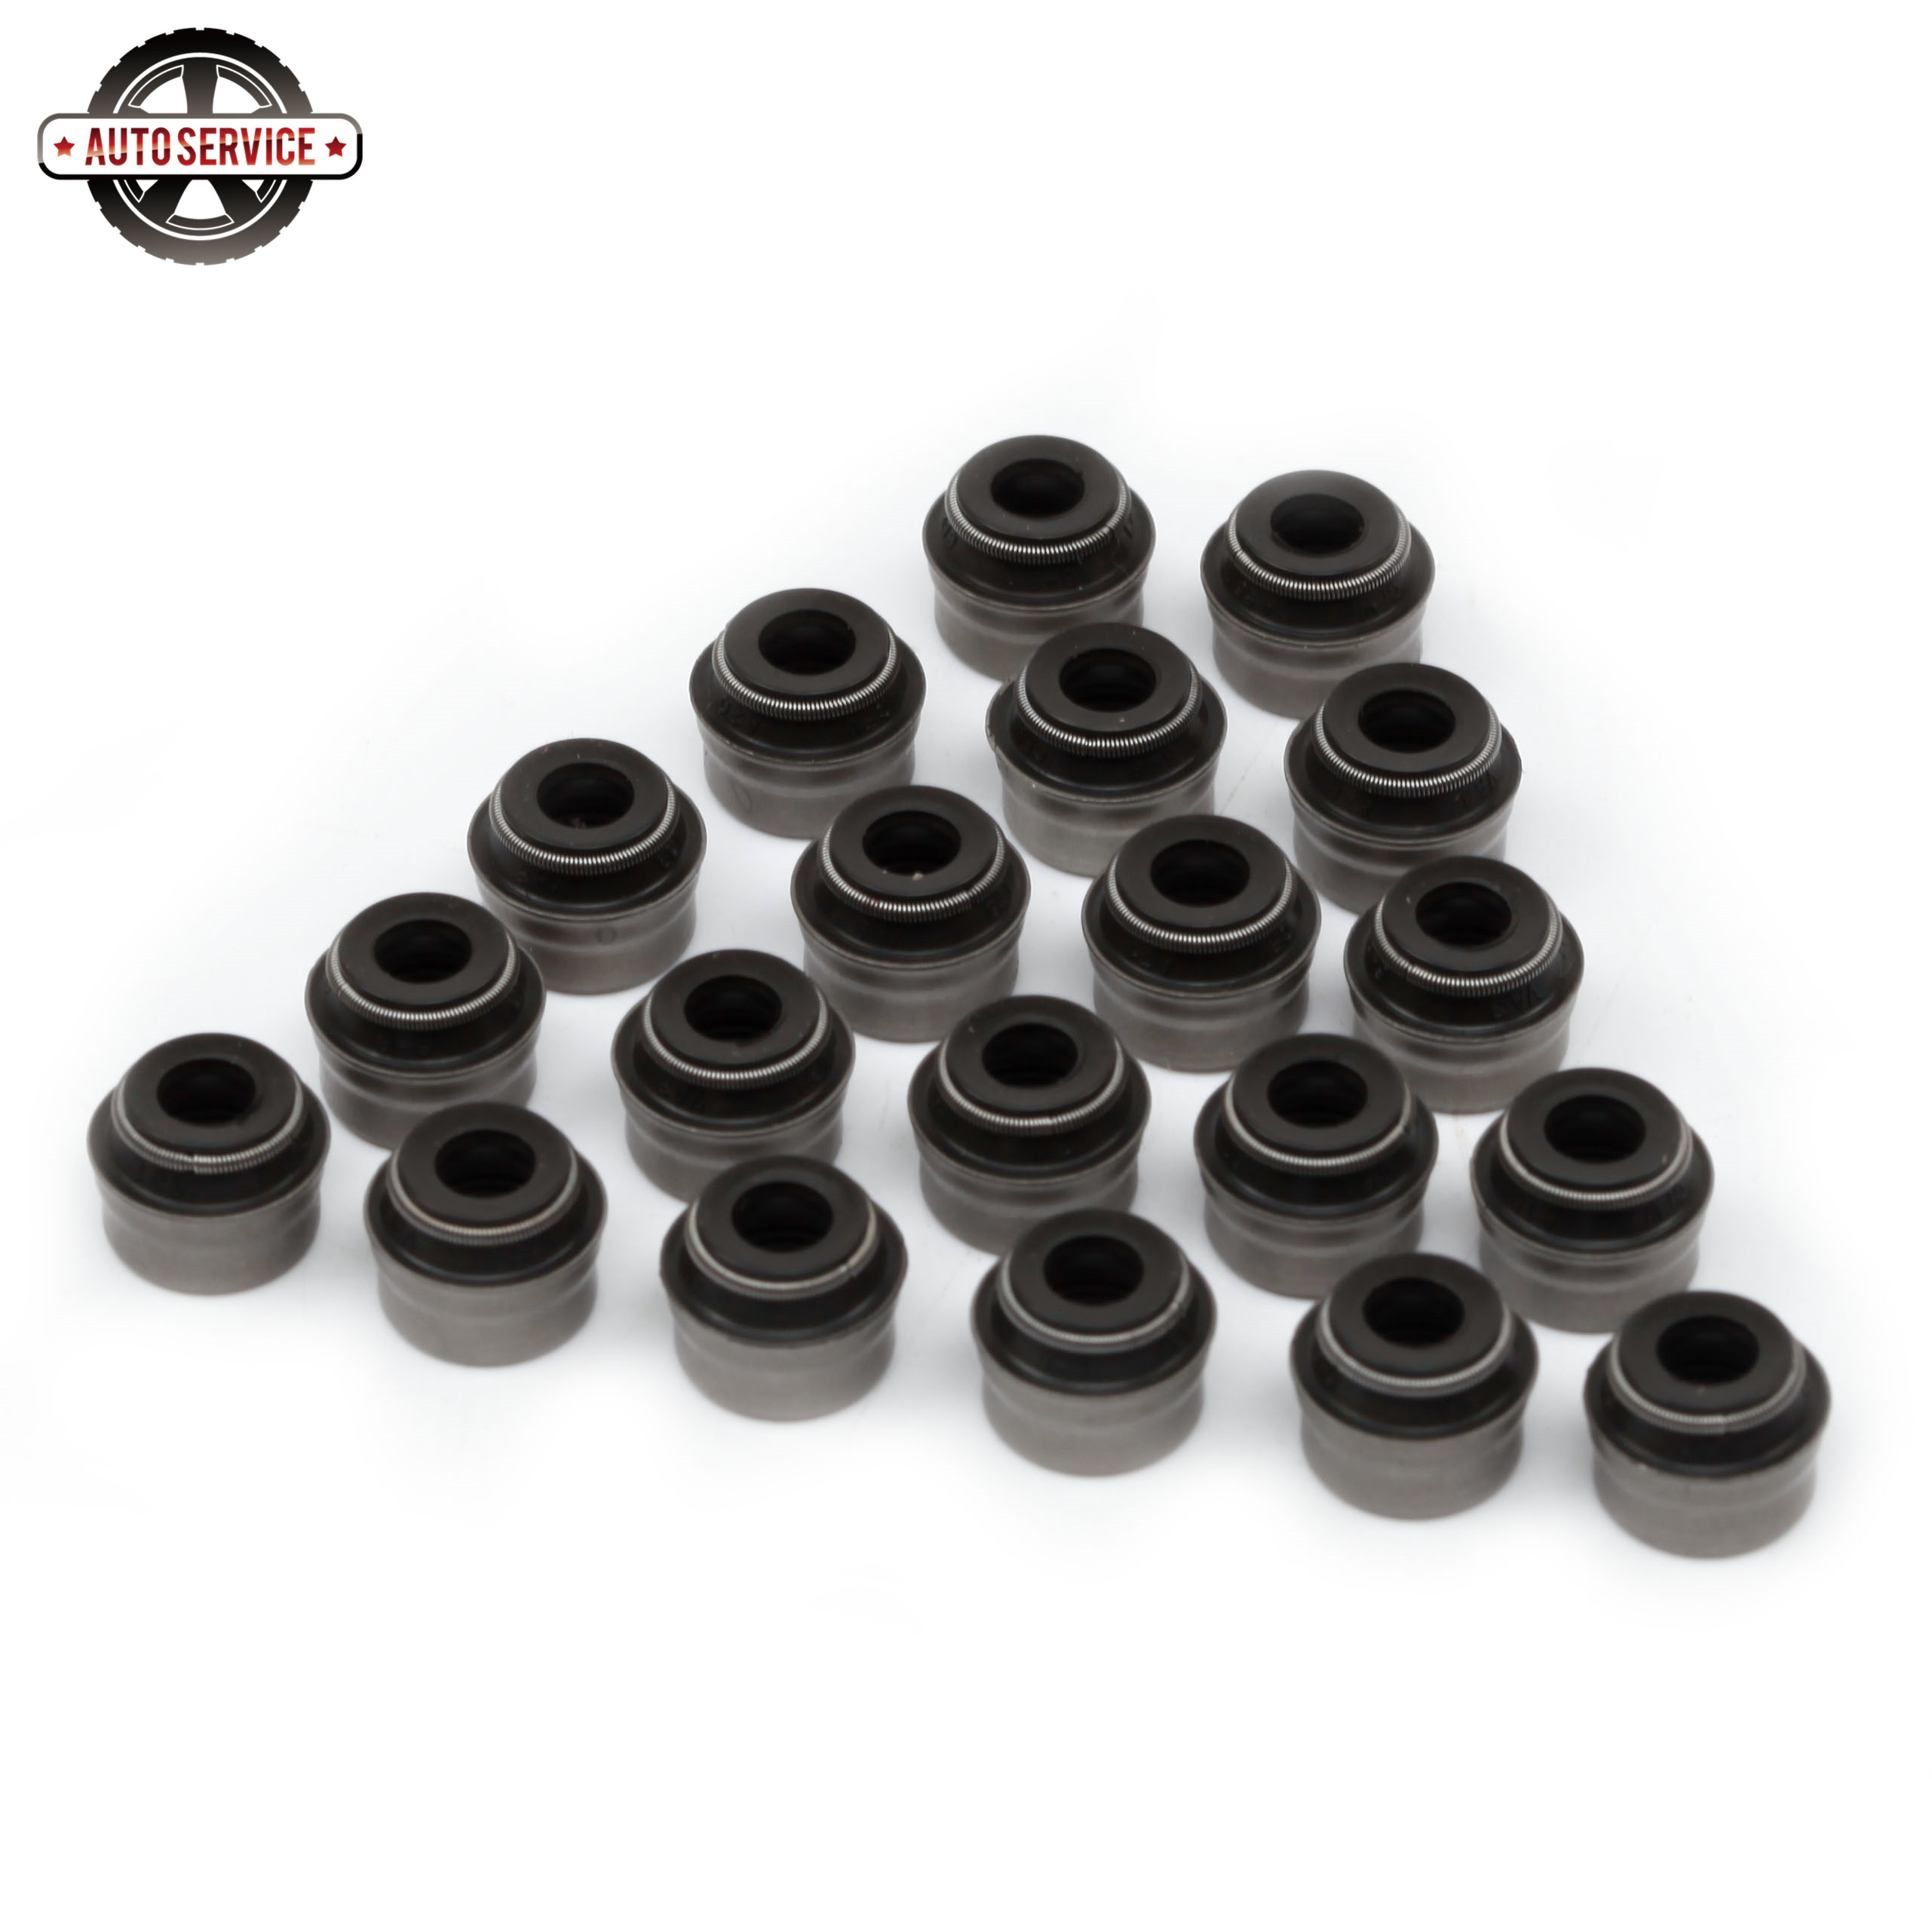 New 036 109 675 A 6mm Engine Valve Stem Seals Kit For VW Skoda Seat Porsche Mercedes Benz Audi 06B 109 675 11342245151 LDY000060